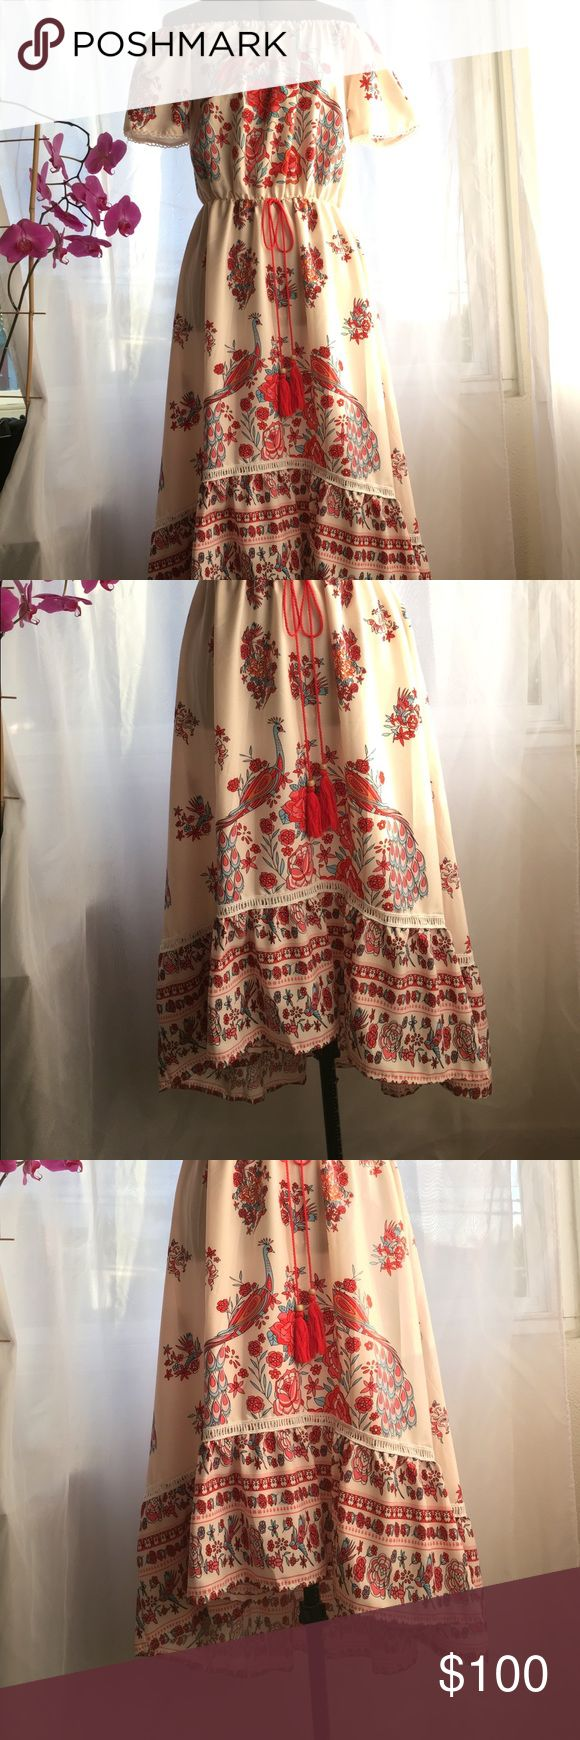 Gorgeous off the shoulder, high low festive dress Fun and flirty dress with flower and bird pattern and rope tie at waist. Off the shoulder. NWOT Dresses High Low